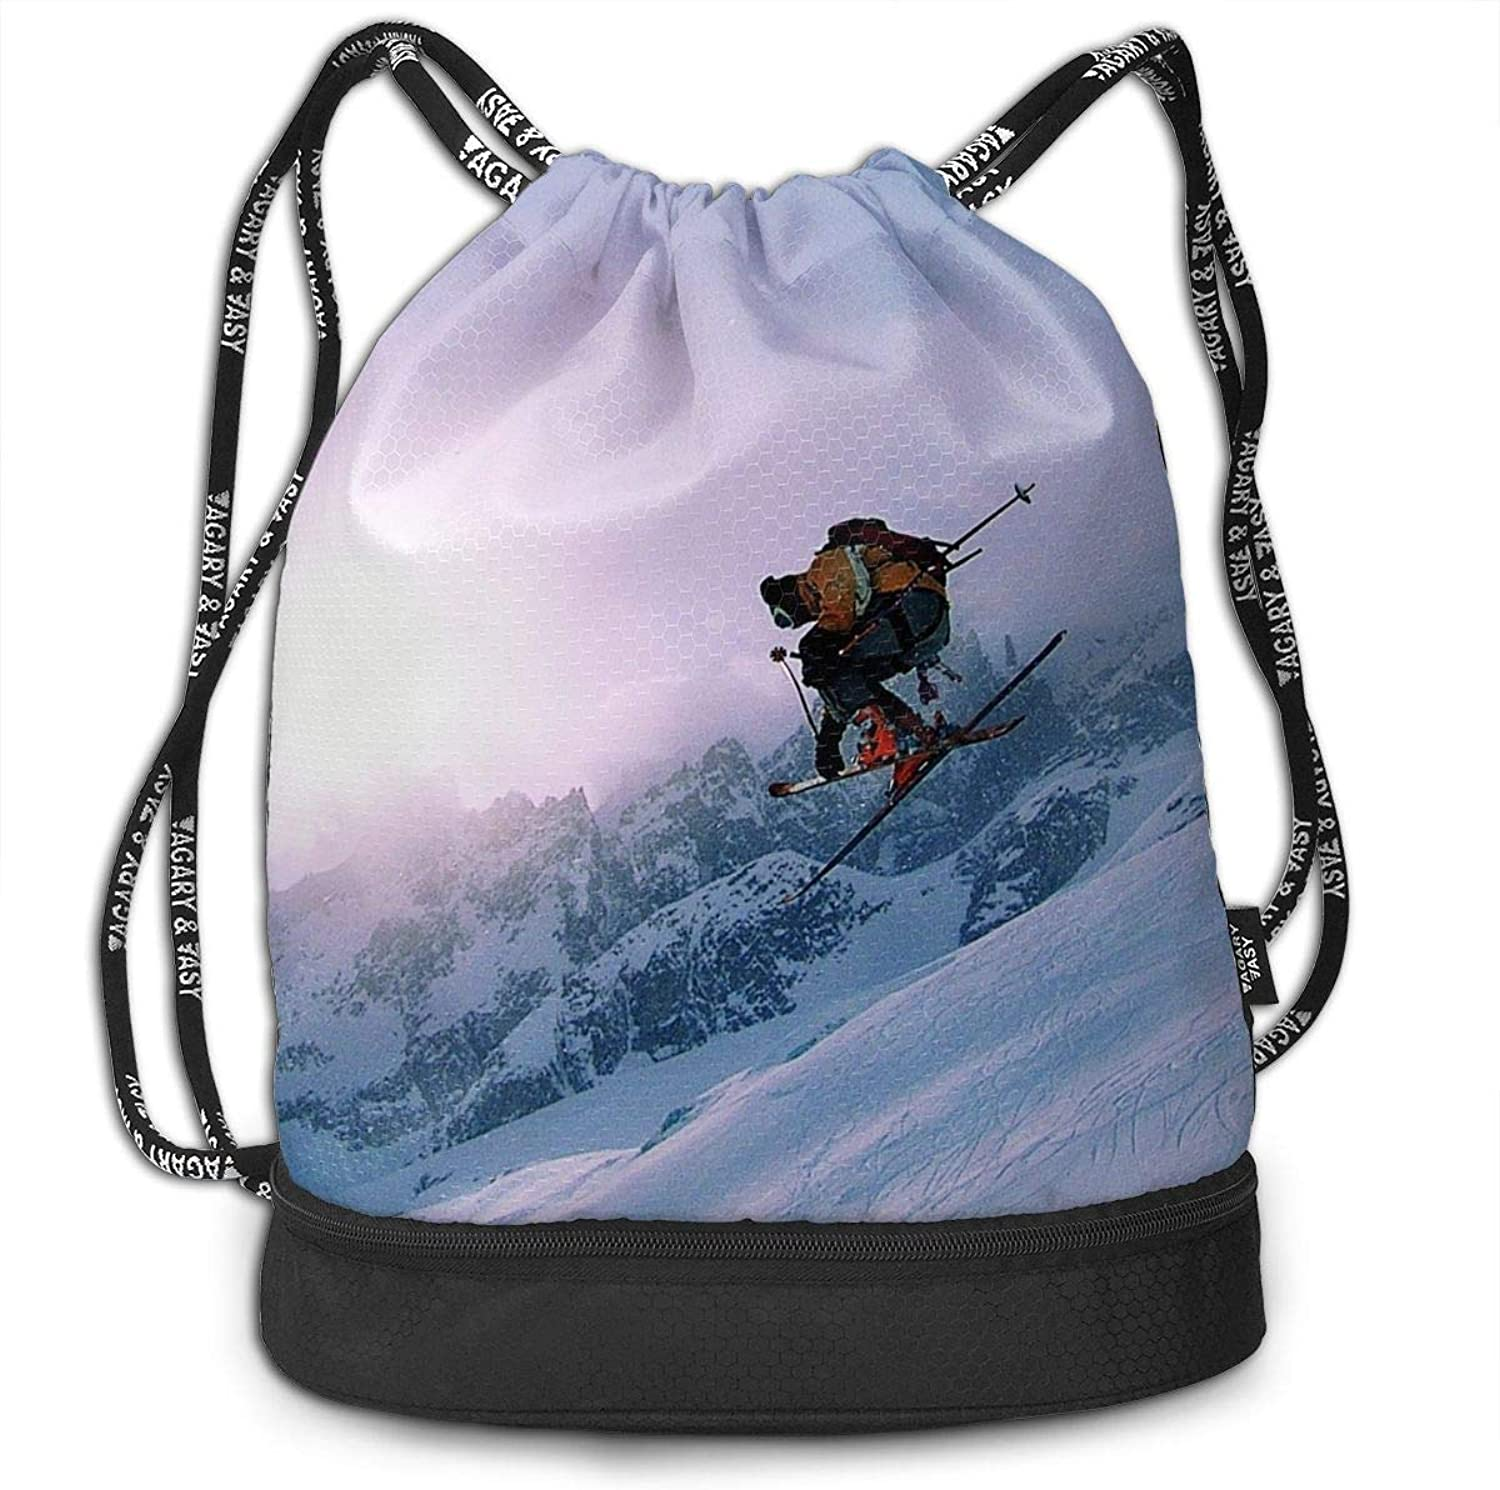 Gymsack Skiing Mountains Jump Print Drawstring Bags  Simple School String Bag